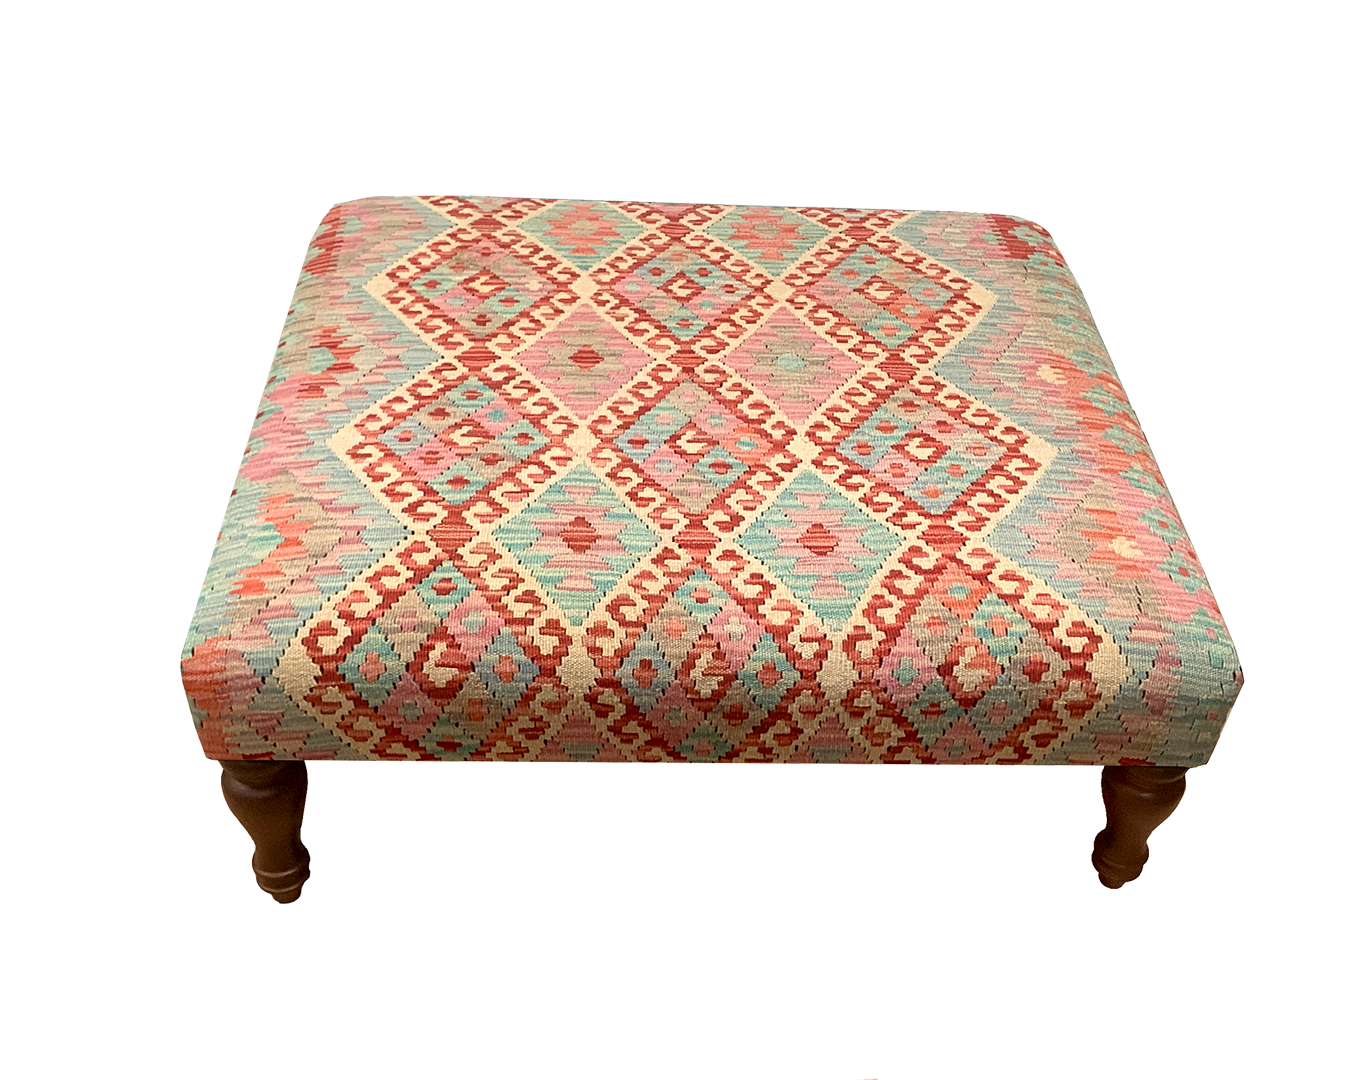 100cmsx100cms Kilim Table Stool